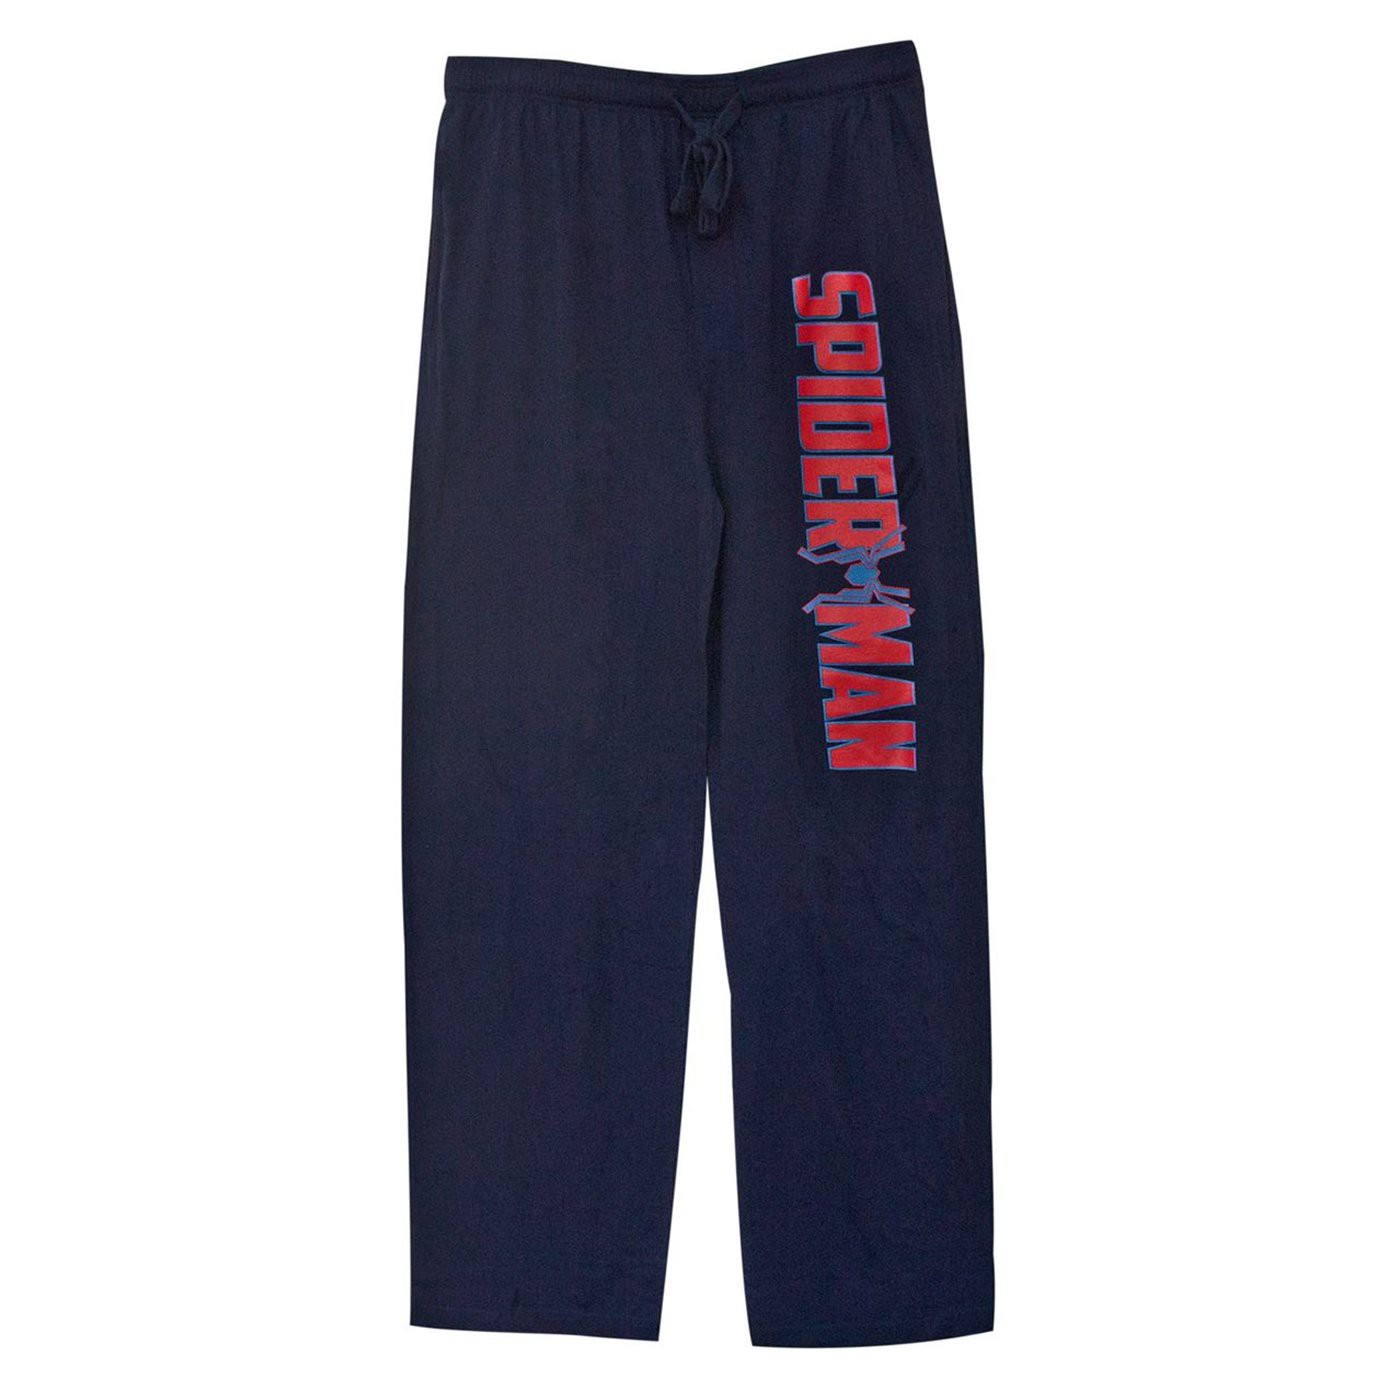 Spider-Man Iron Spider Logo Navy Unisex Sleep Pants